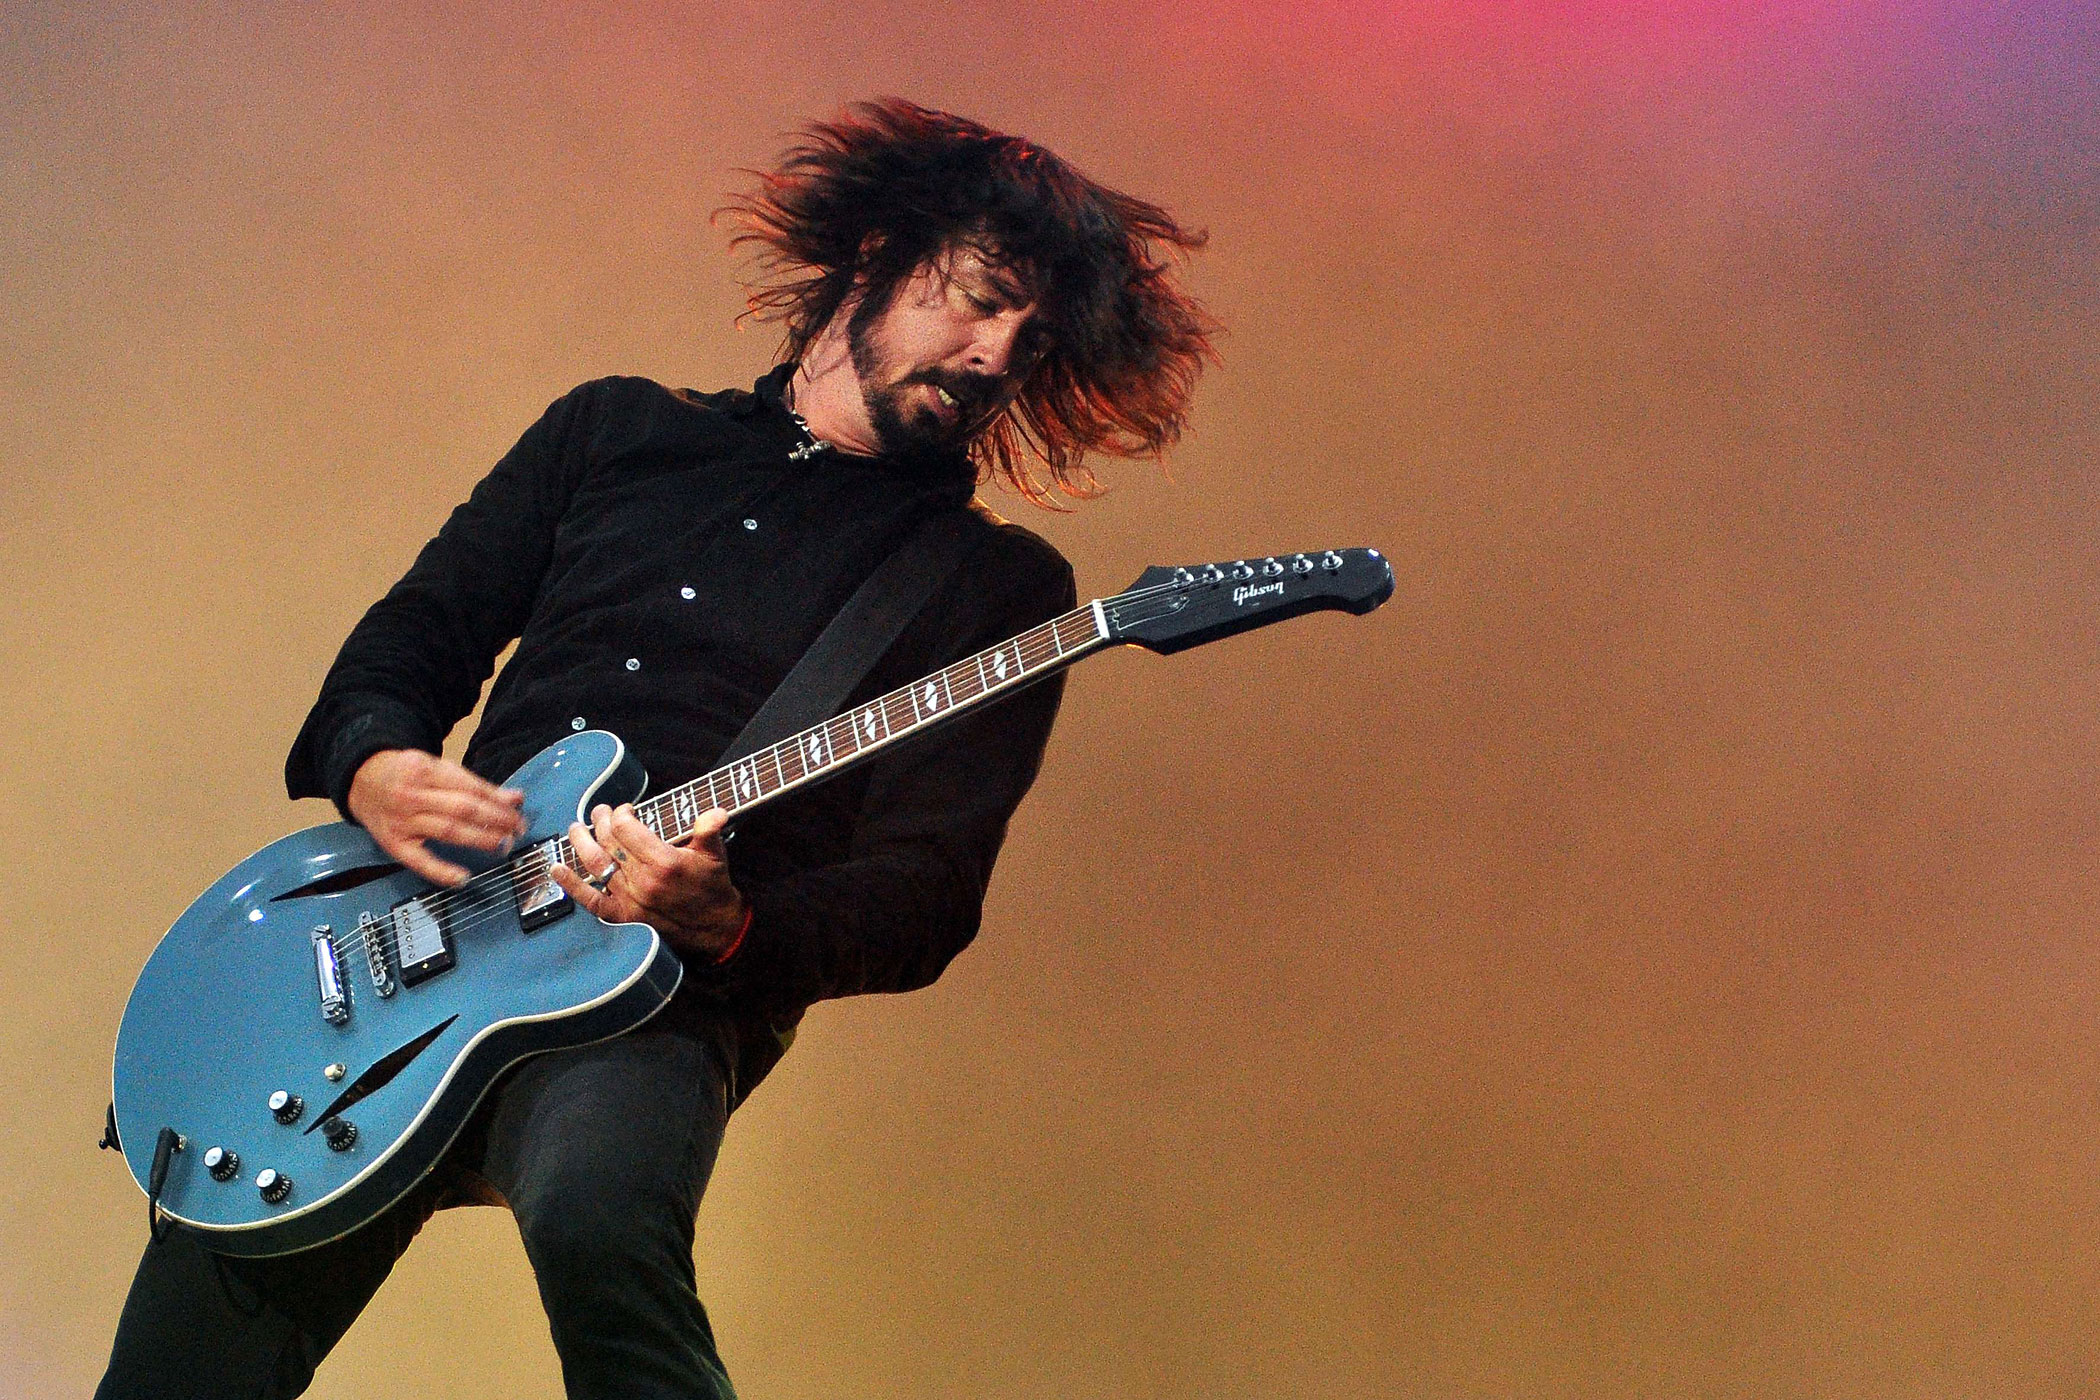 Dave Grohl of the Foo Fighters performs on stage during the third and final day of Pinkpop Festival at Megaland on June 13, 2011 in Landgraaf, Netherlands.